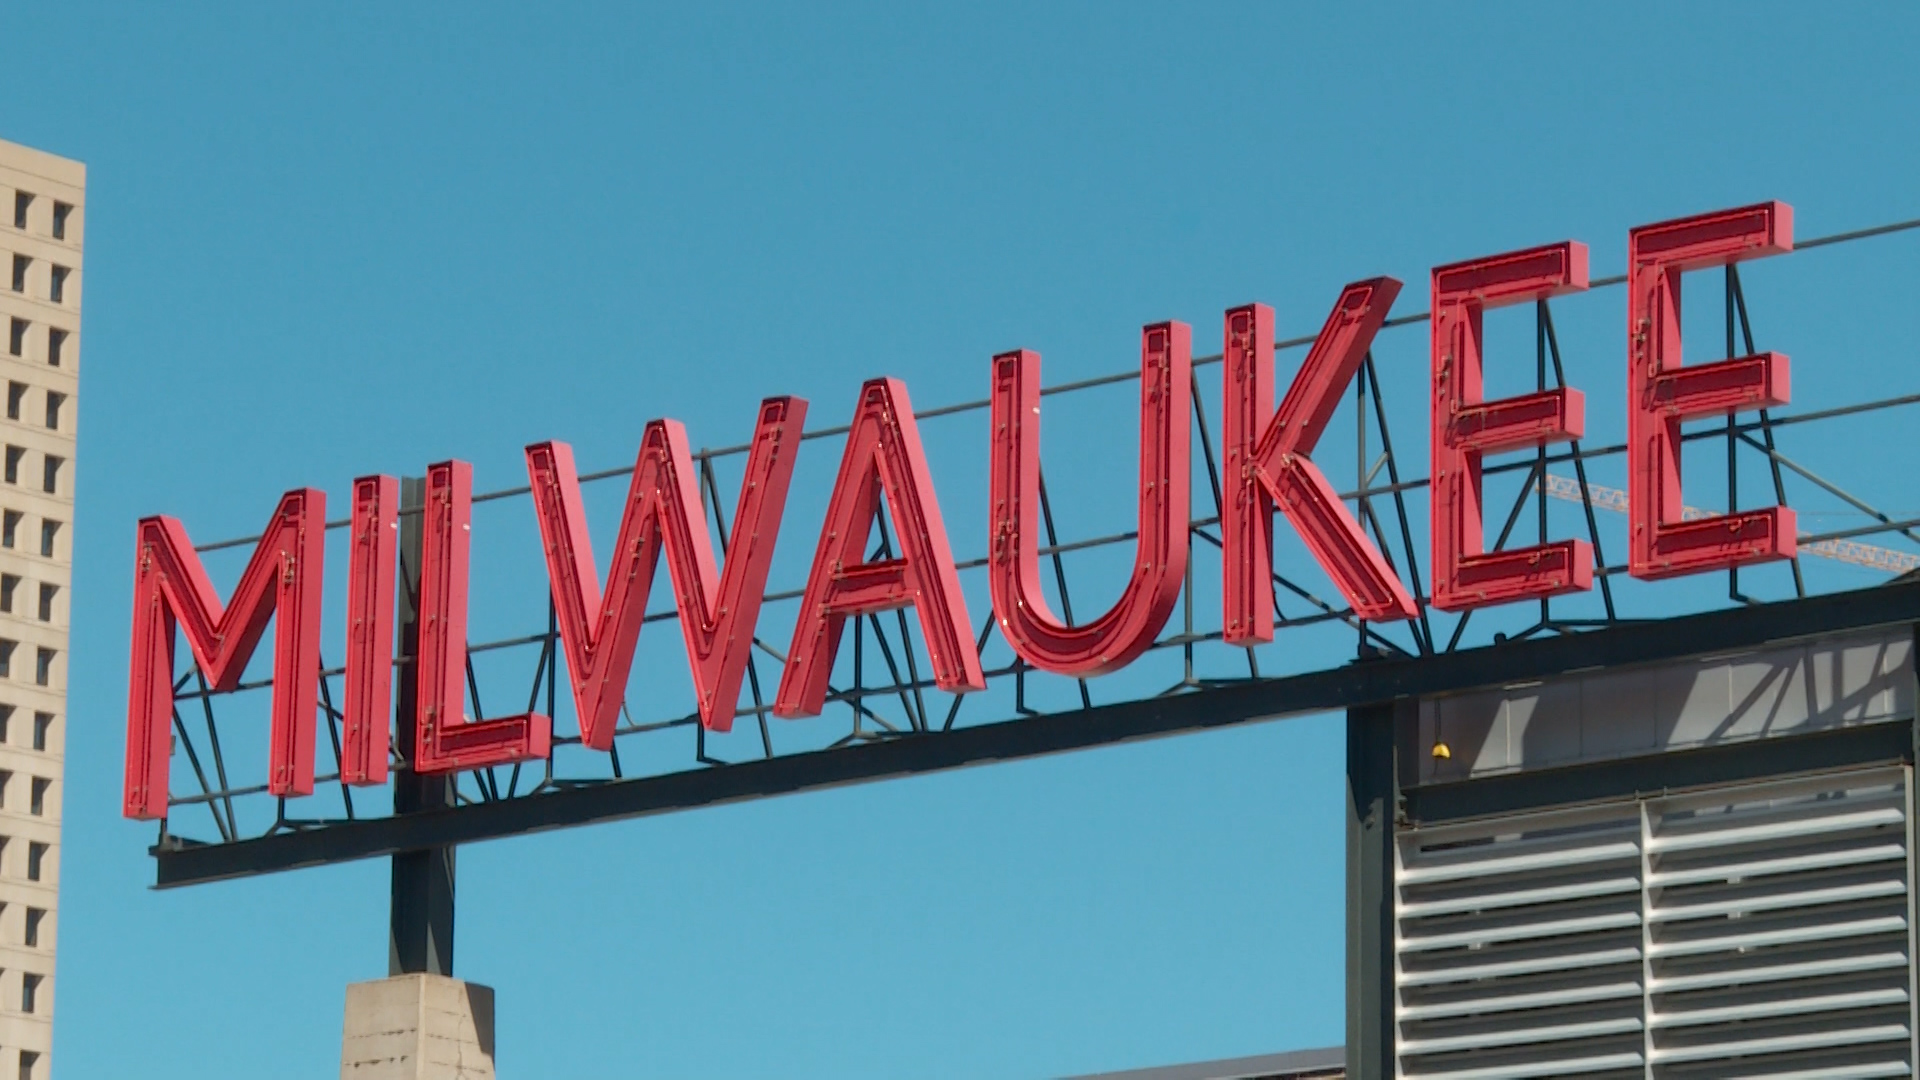 What's it like being a black man in Milwaukee? | PBS NewsHour